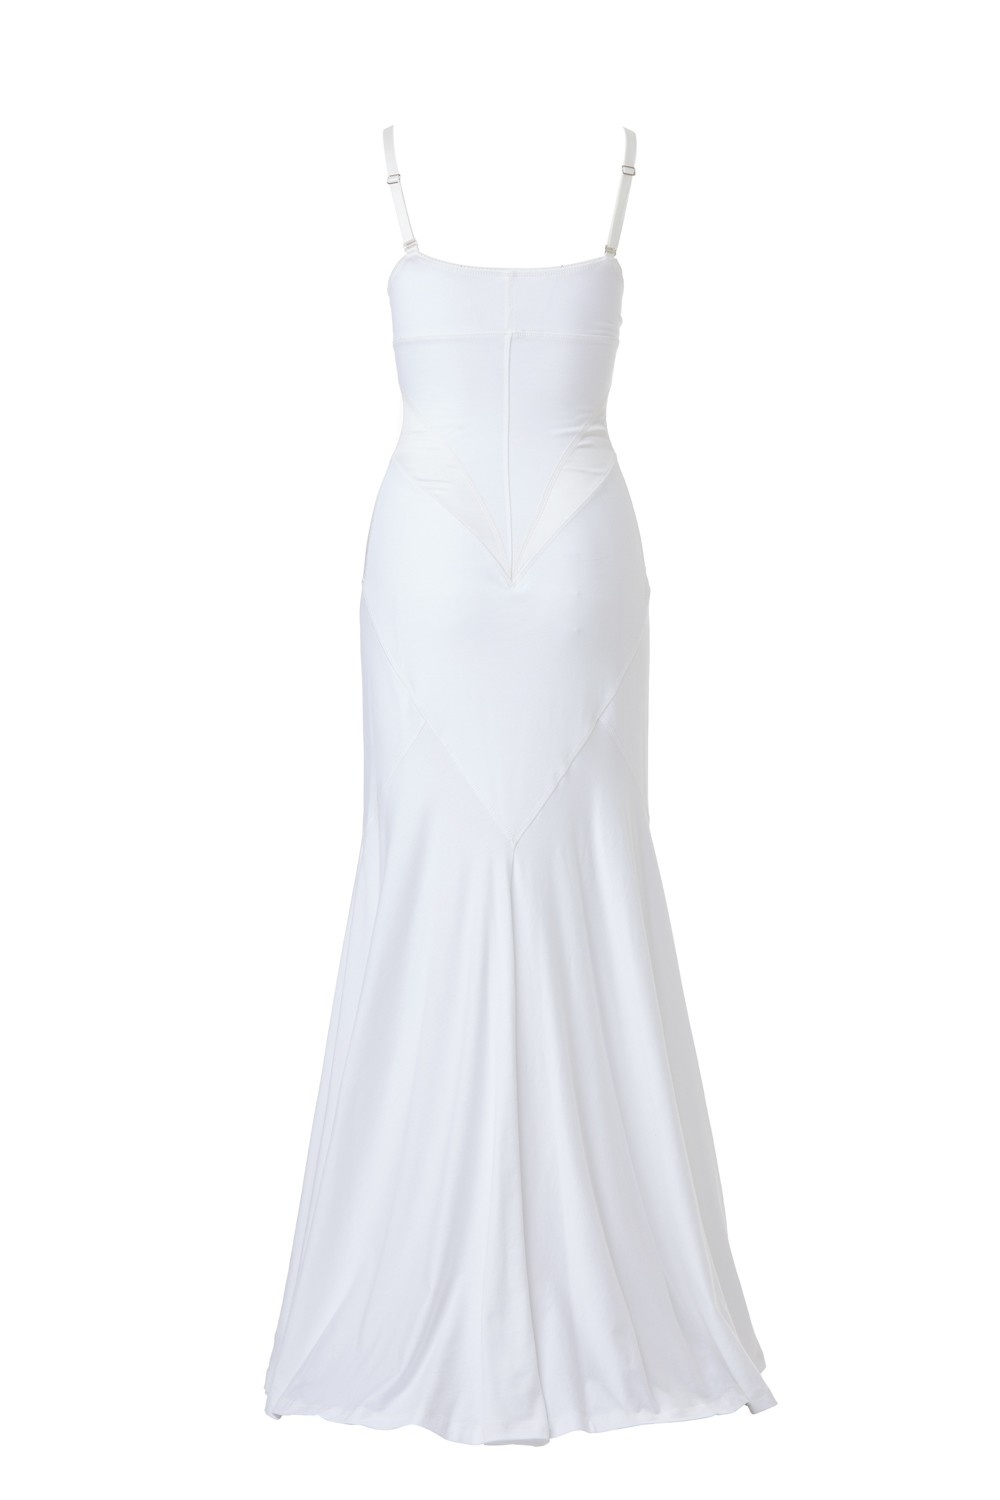 Retro Dress - Cotton Jersey and Silk Satin - White - long